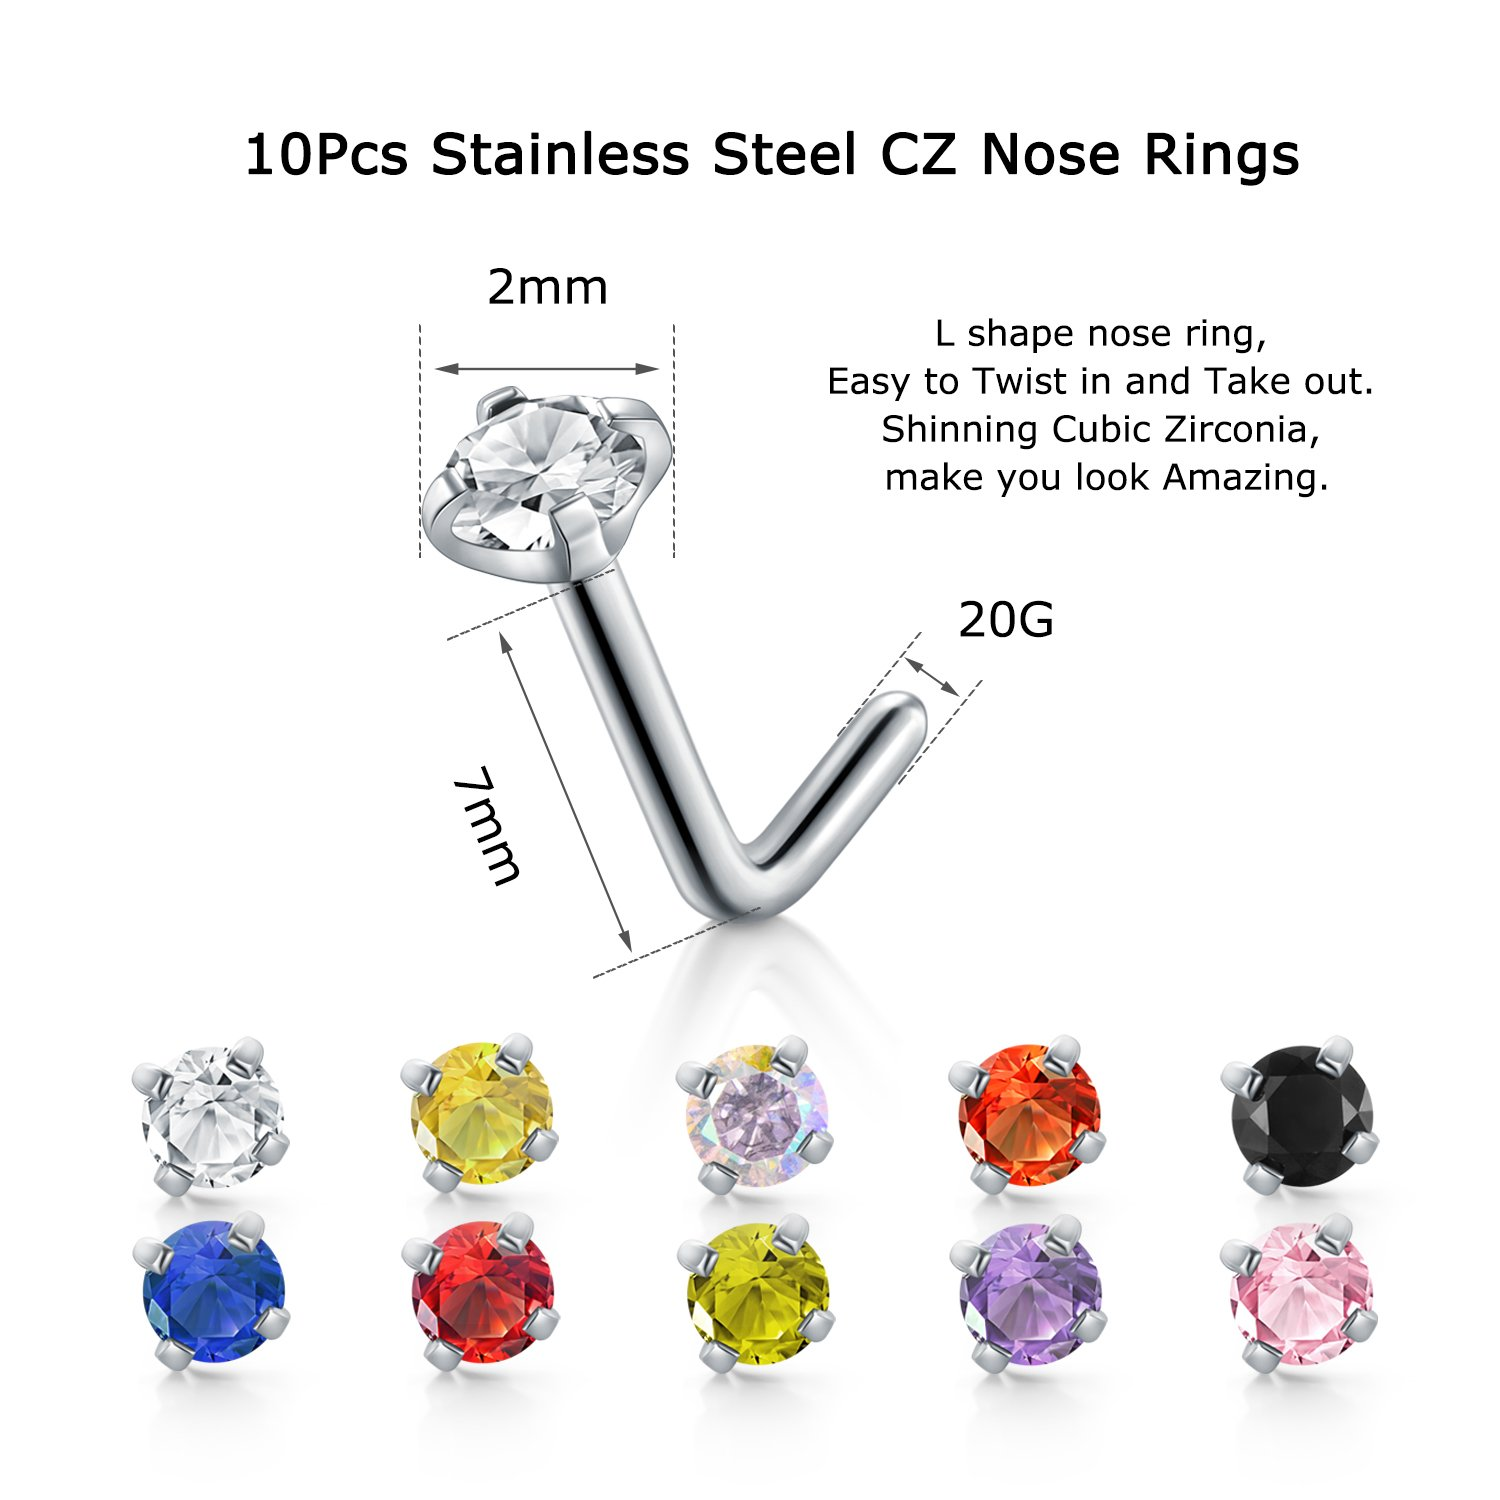 Amazoncom Qwalit 20g Nose Studs Surgical Steel Nose Rings Cz